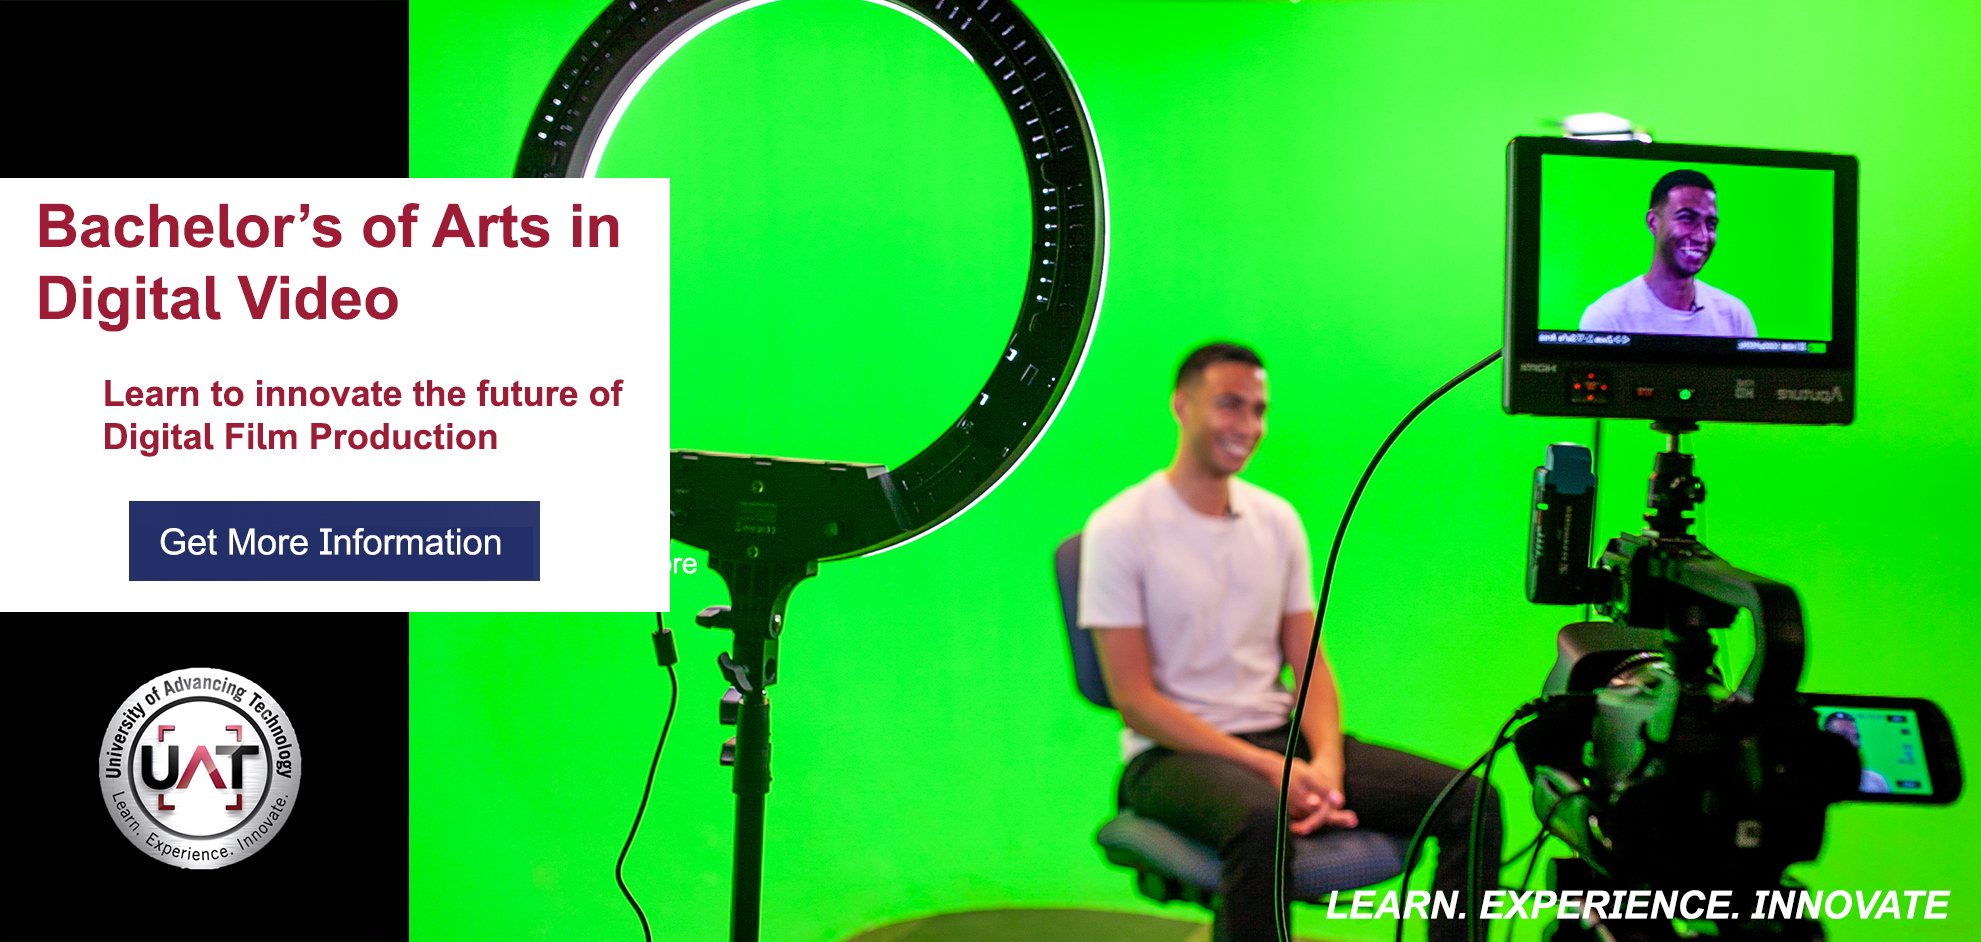 University of Advancing Technology student in front of green screen